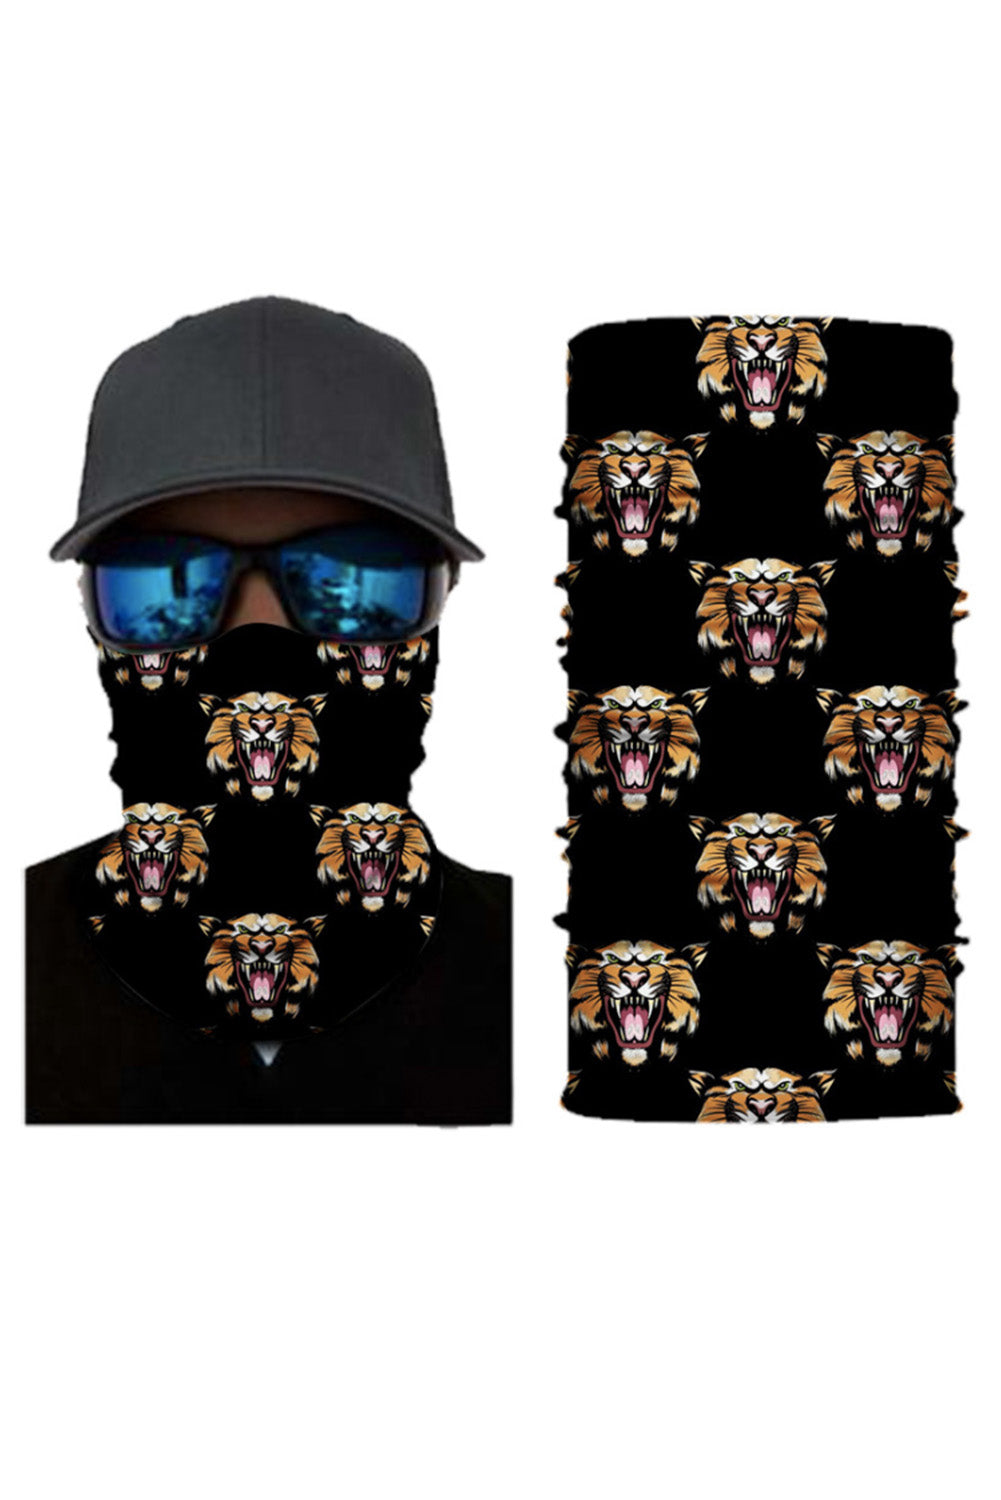 Tiger Print Face Mask and Neck Warmer with Sun UV Protection Neck Gaiter Discount Designer Fashion Clothes Shoes Bags Women Men Kids Children Black Owned Business